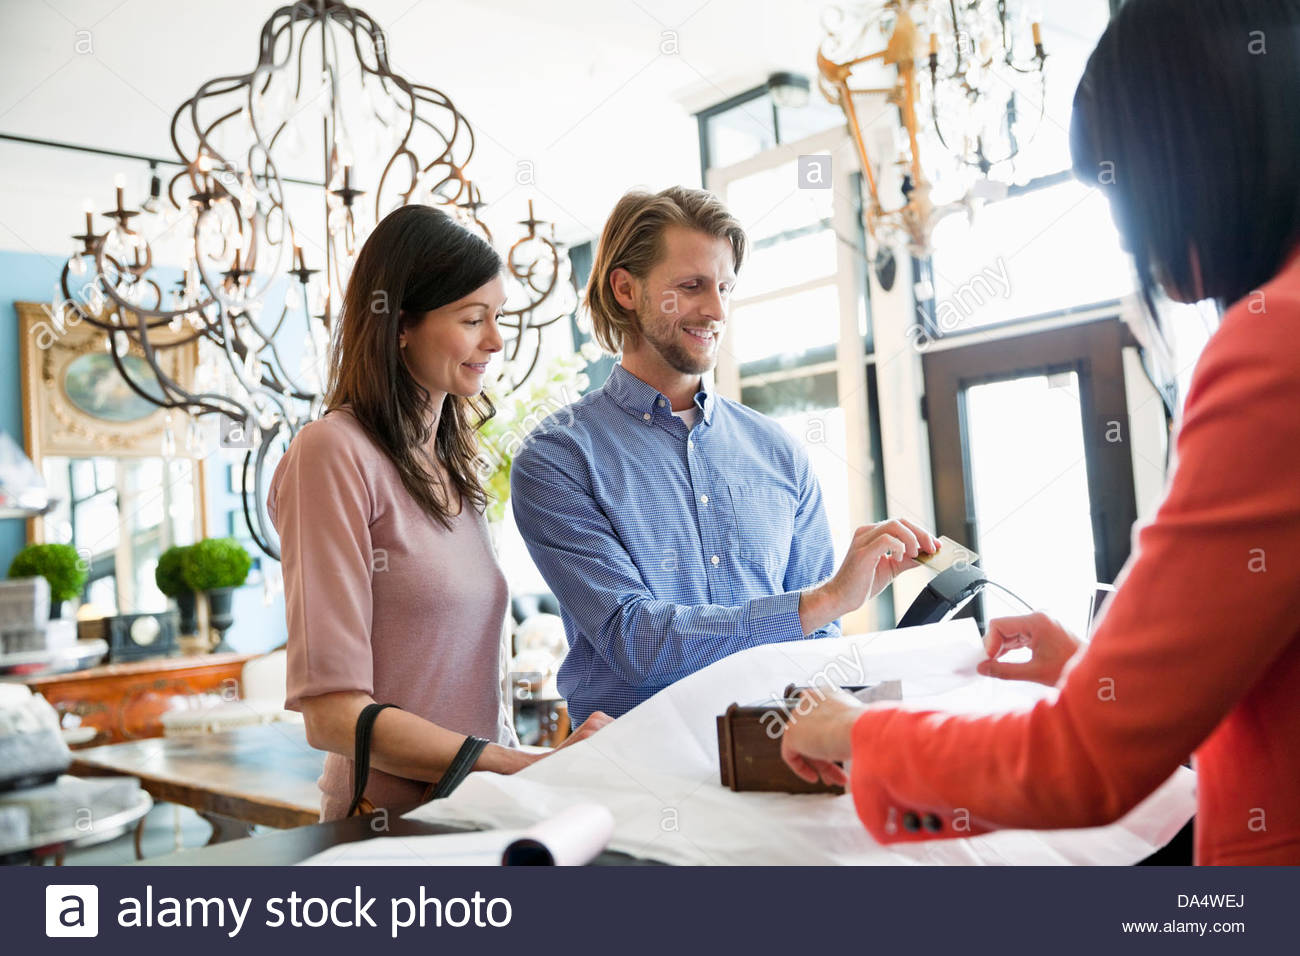 Couple paying for purchase at furniture store - Stock Image